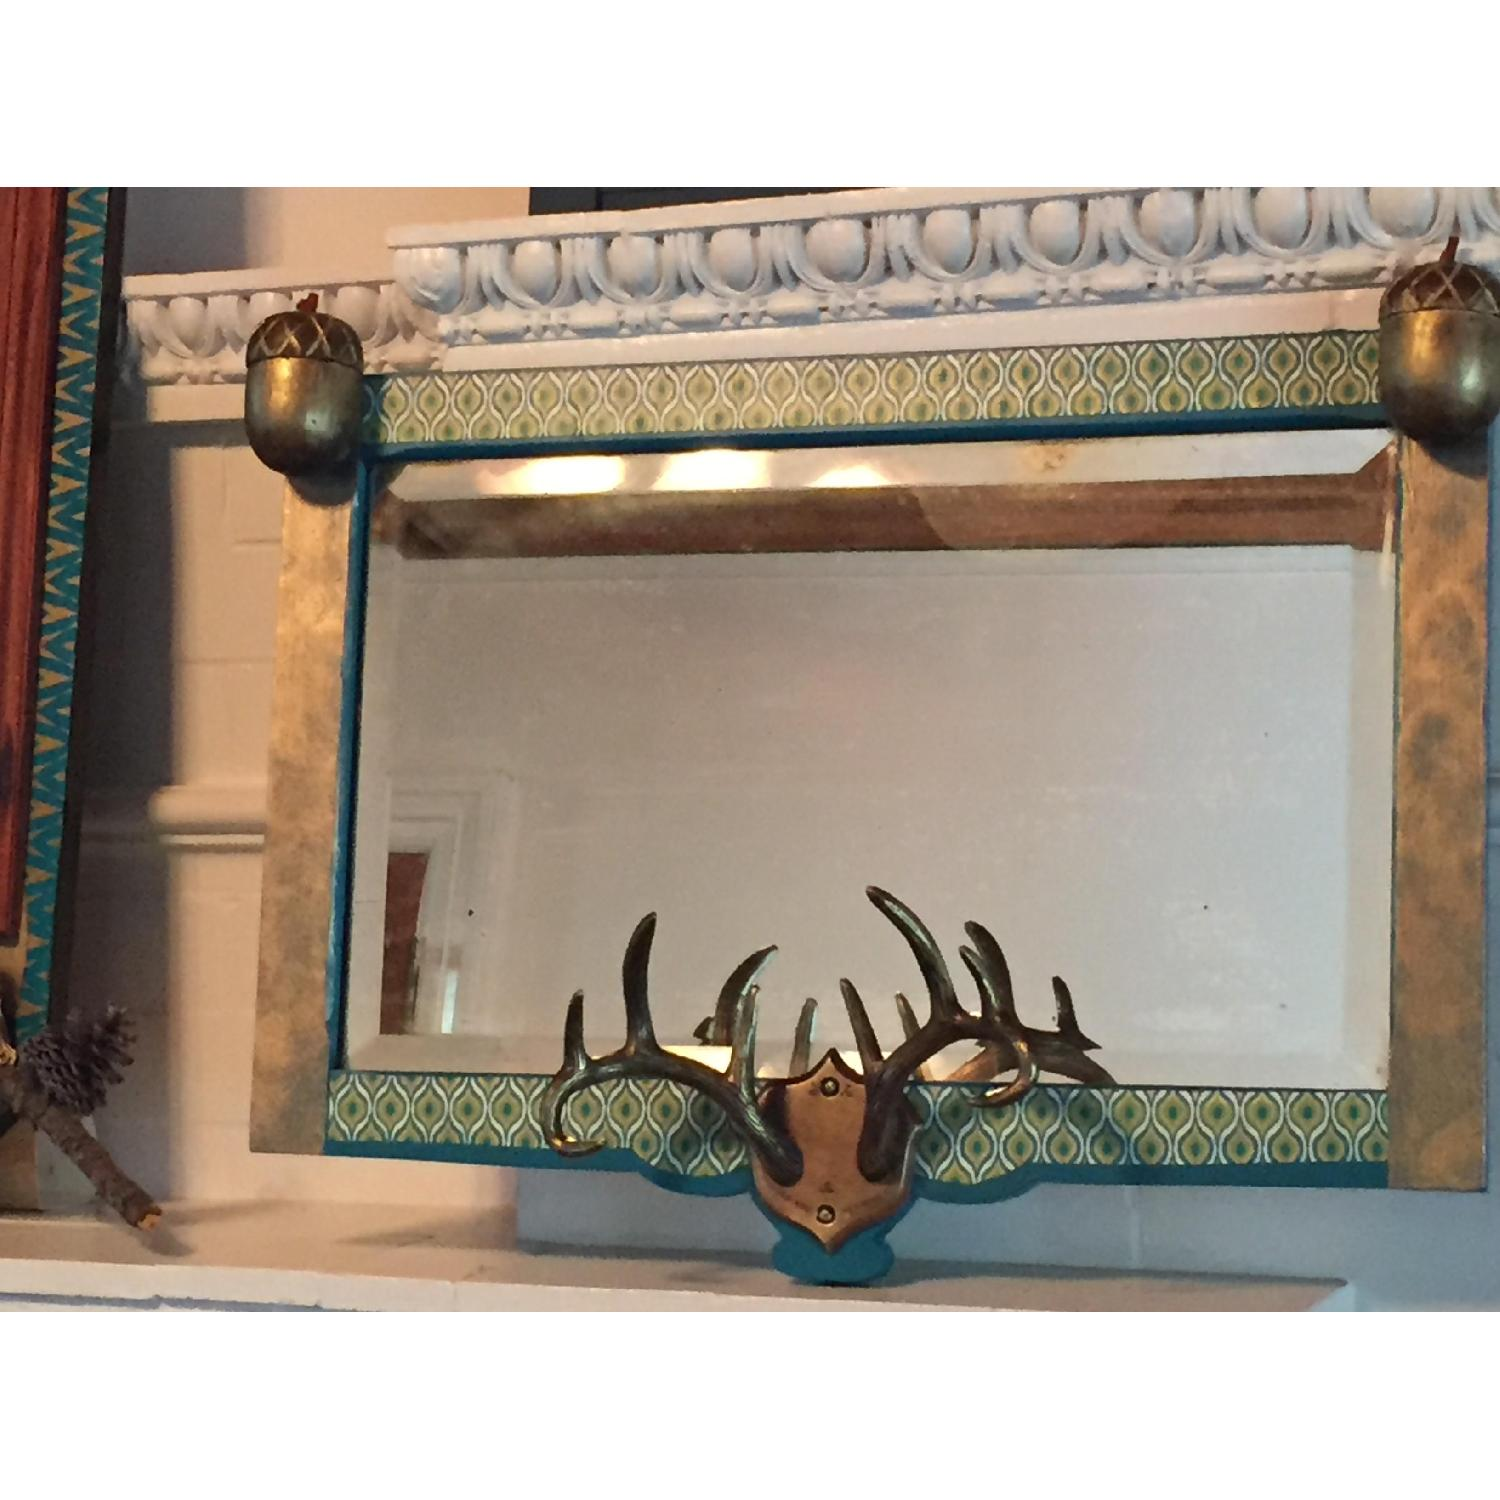 Rooms About You Design Studio Woodland Trophy Mirror - image-4